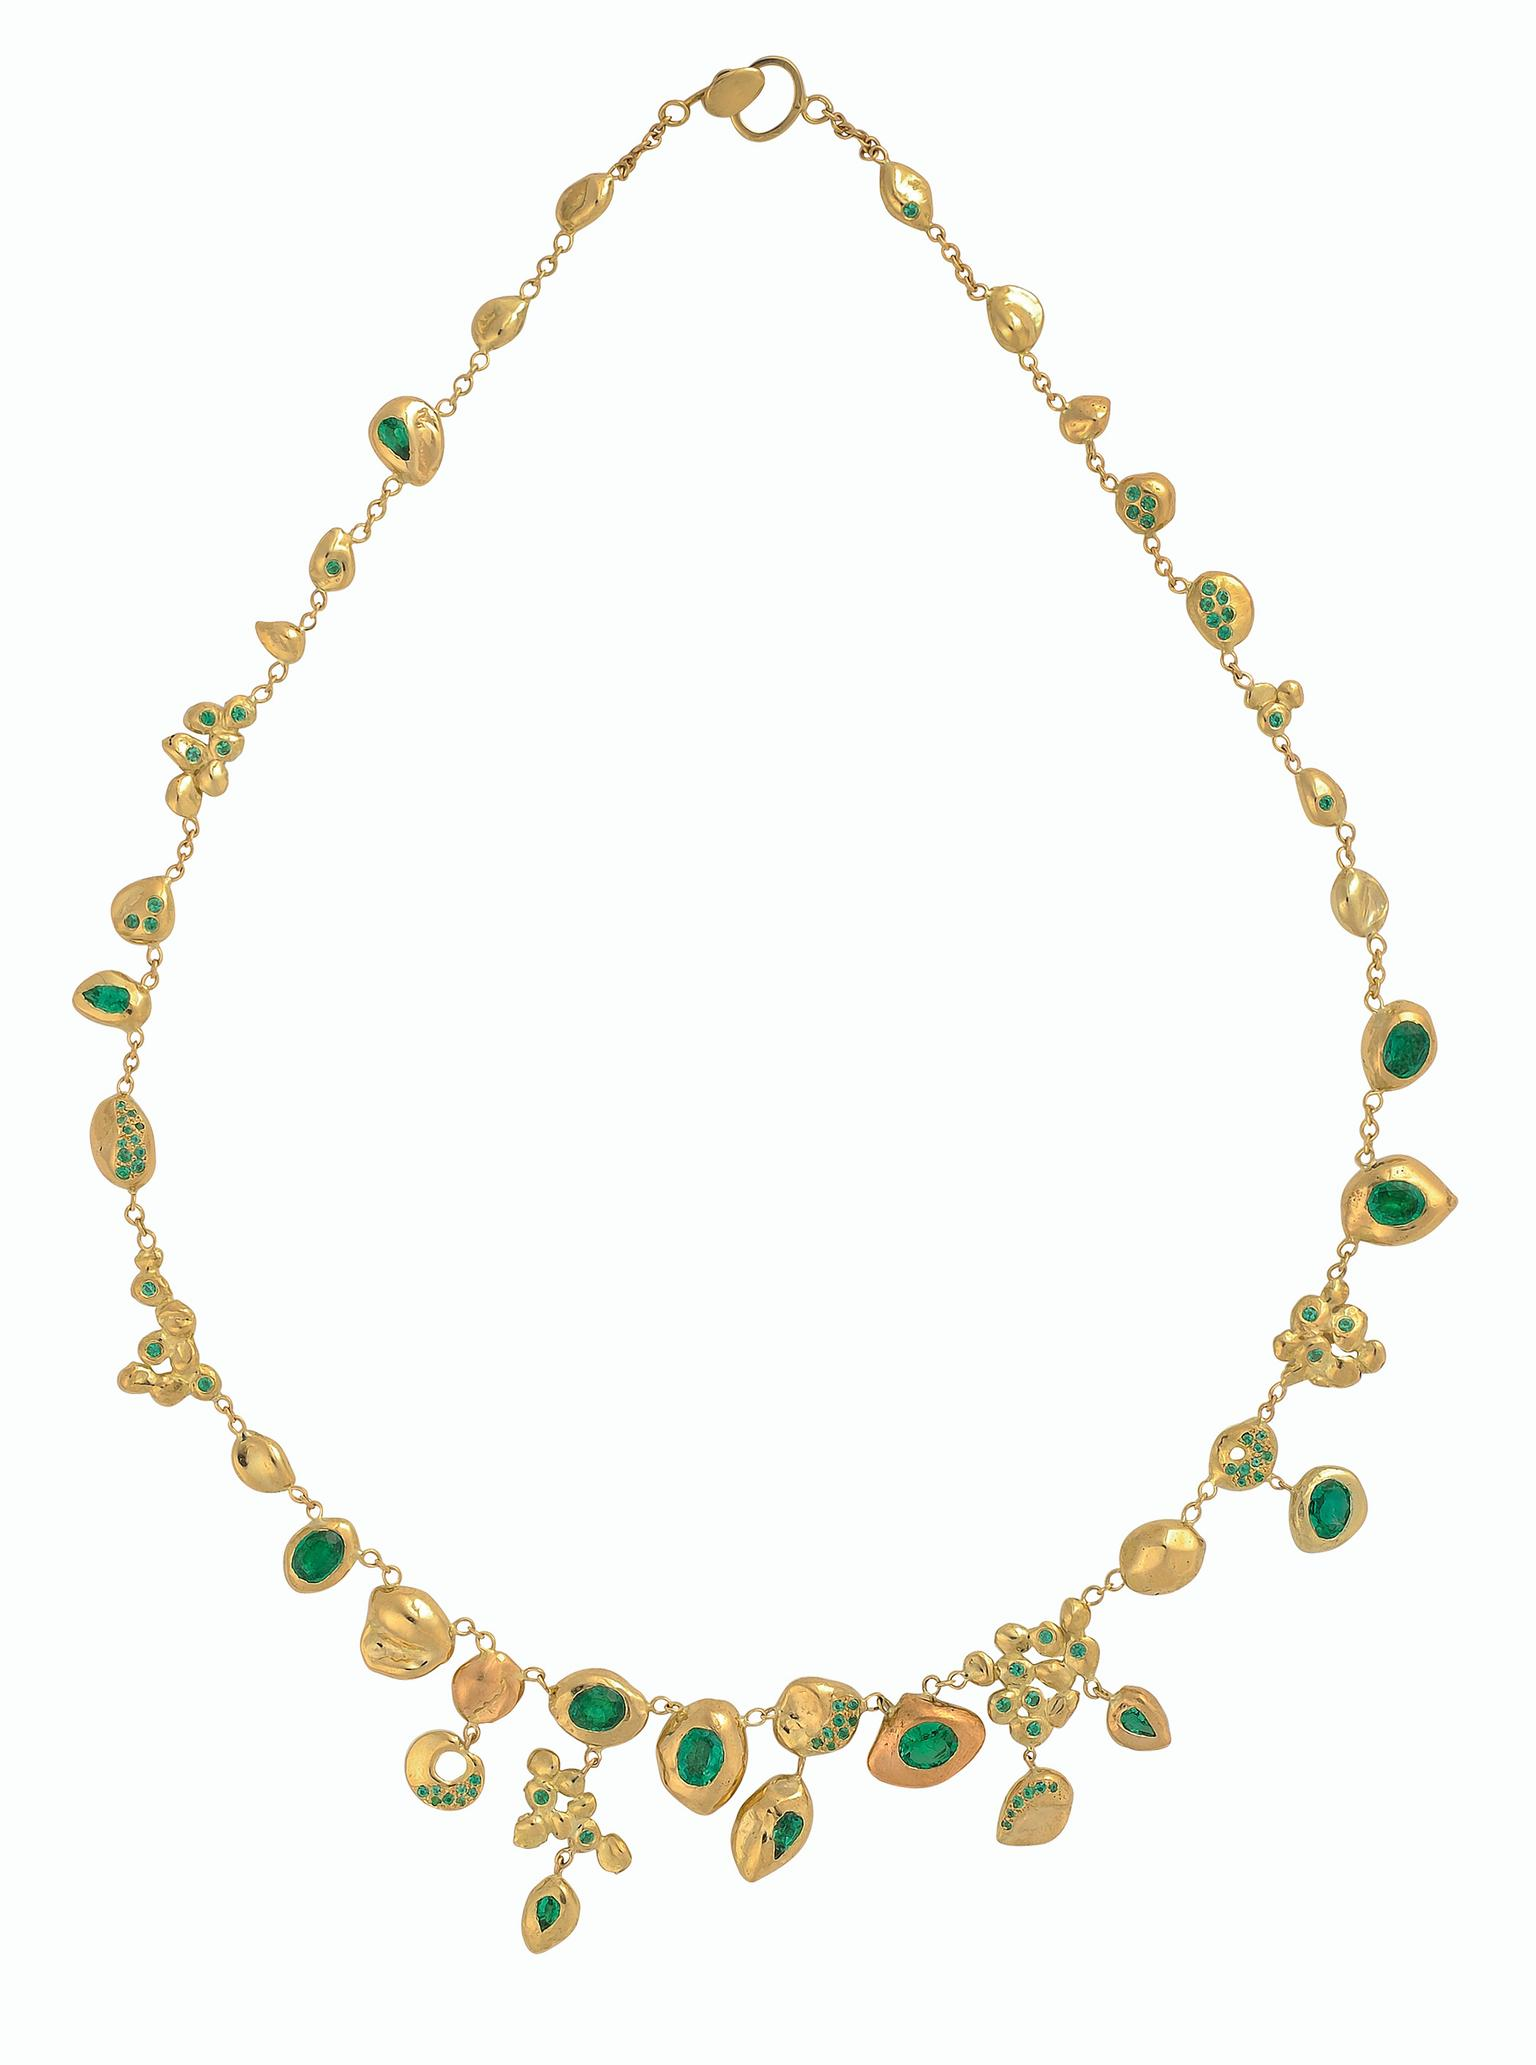 Natasha Collis for Gemfields Emerald Necklace_20131031_Zoom